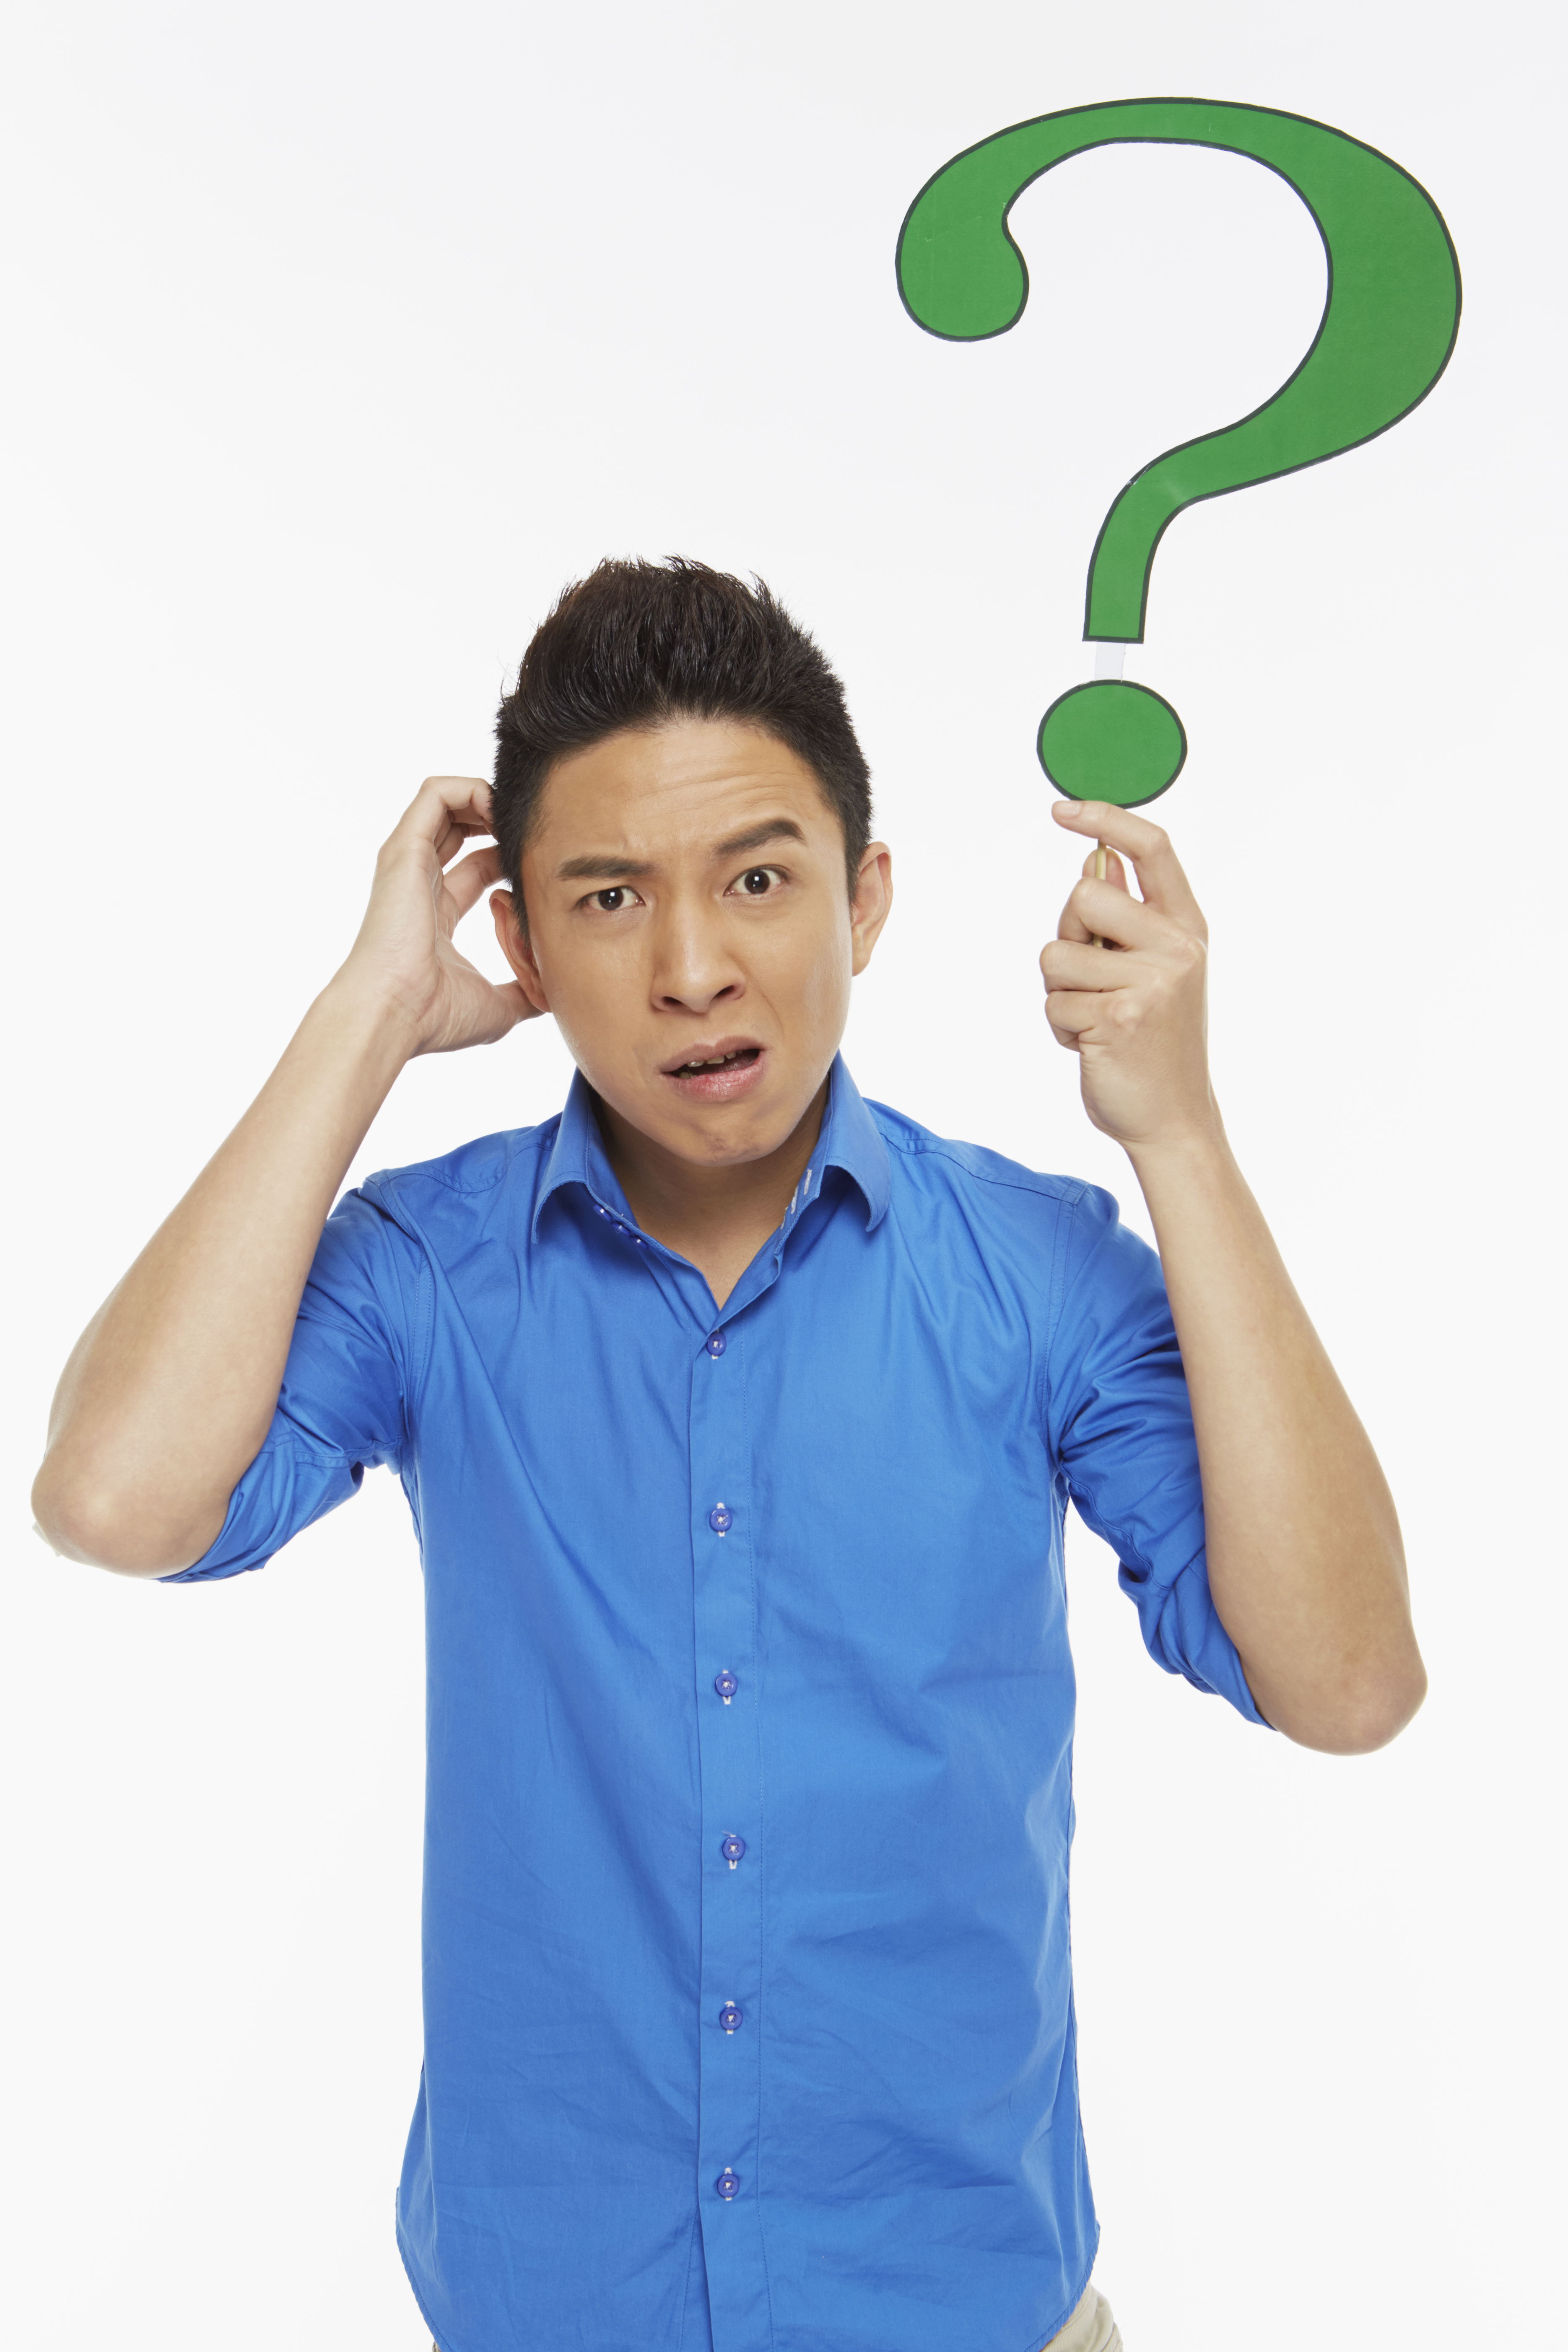 man holding question mark